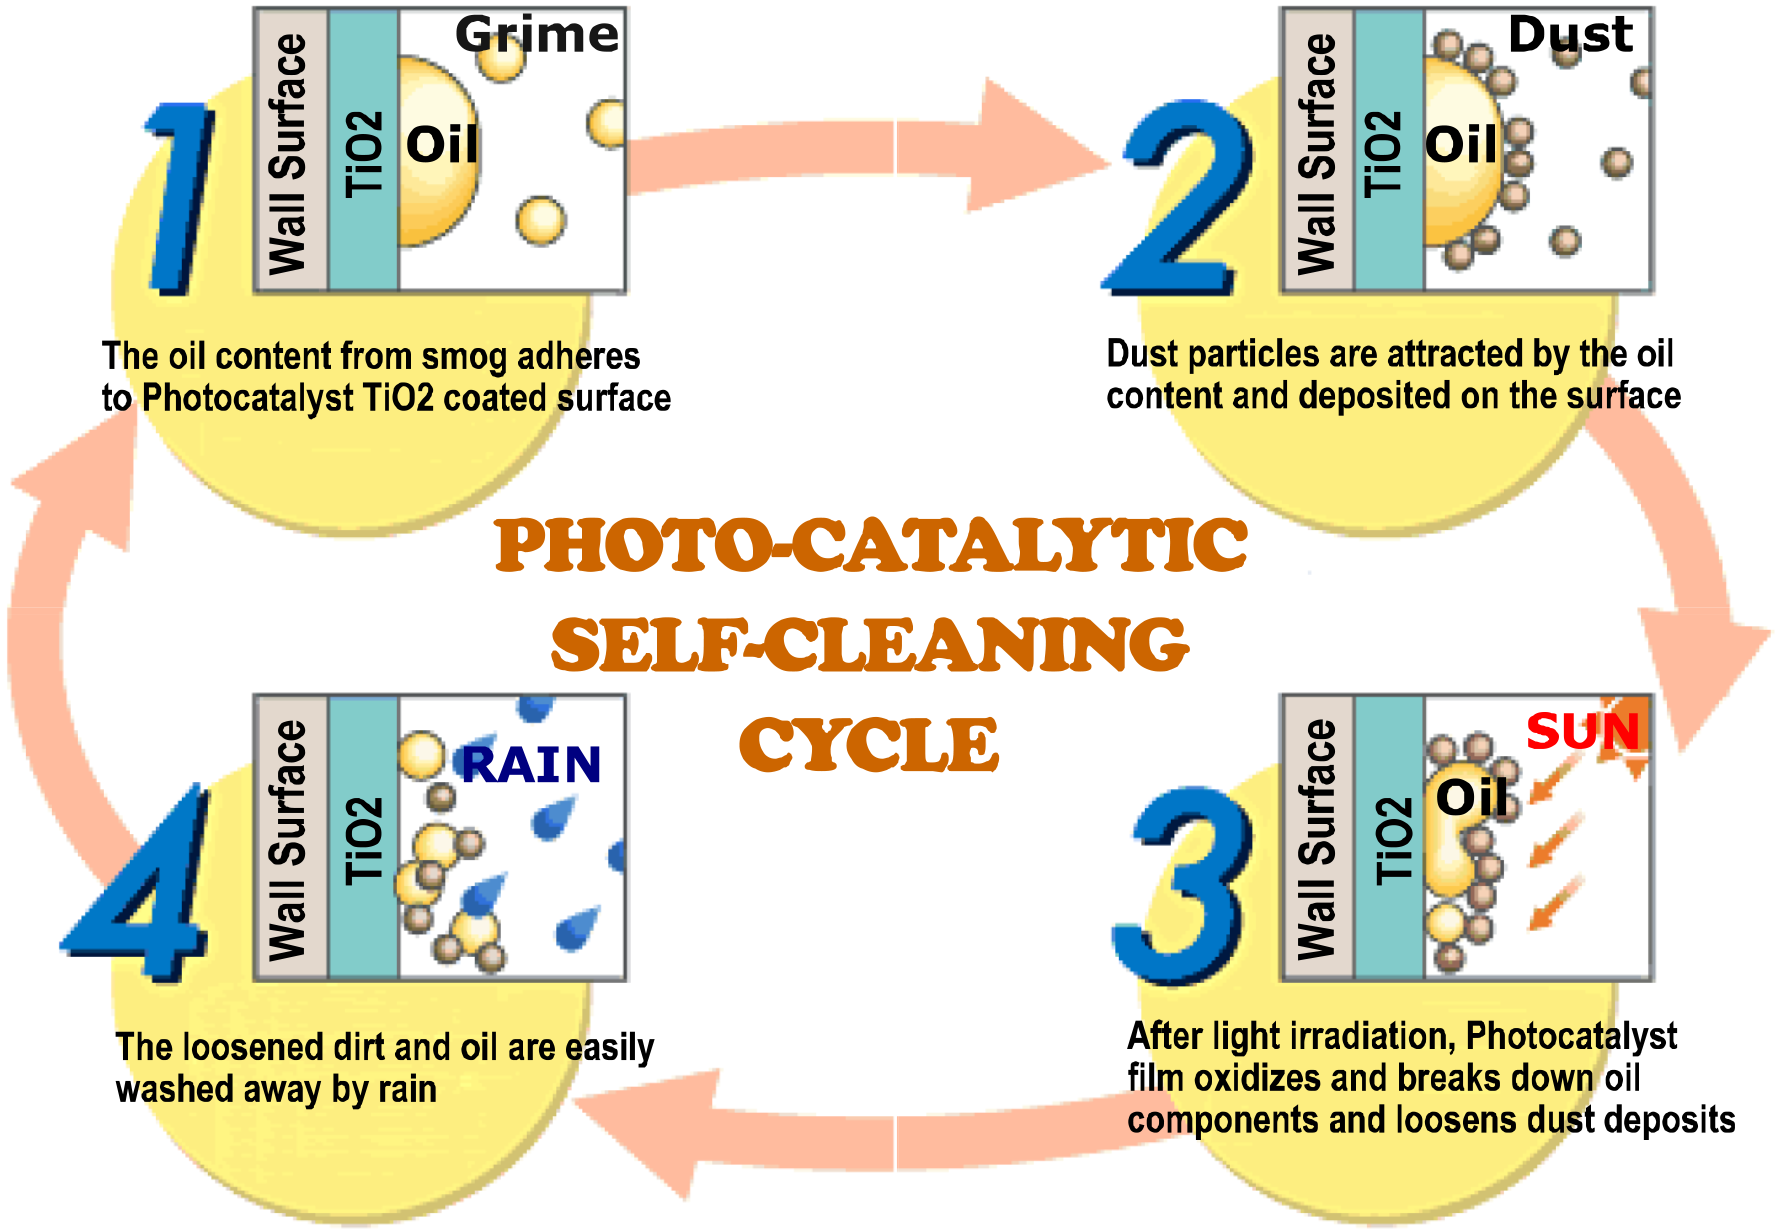 Photocatalytic self cleaning cycle